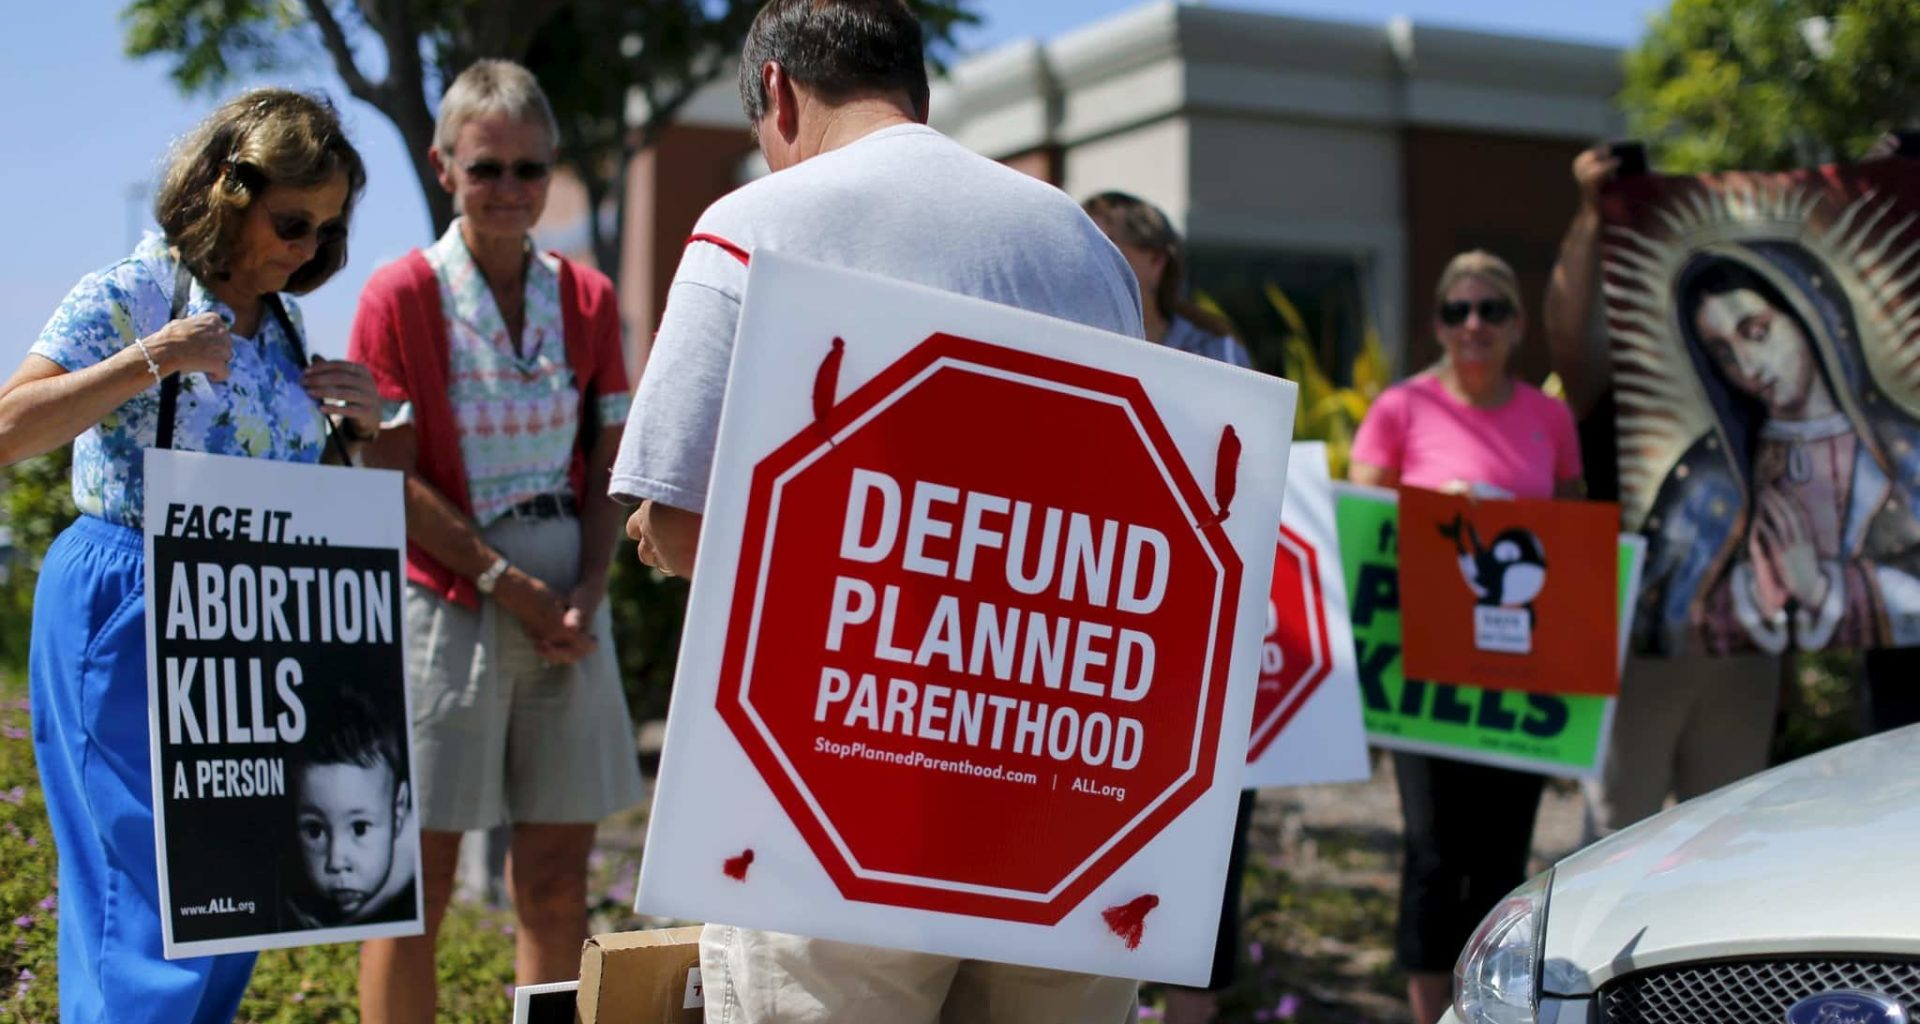 Put Your Pitchforks Down The Truth About The Planned Parenthood Video